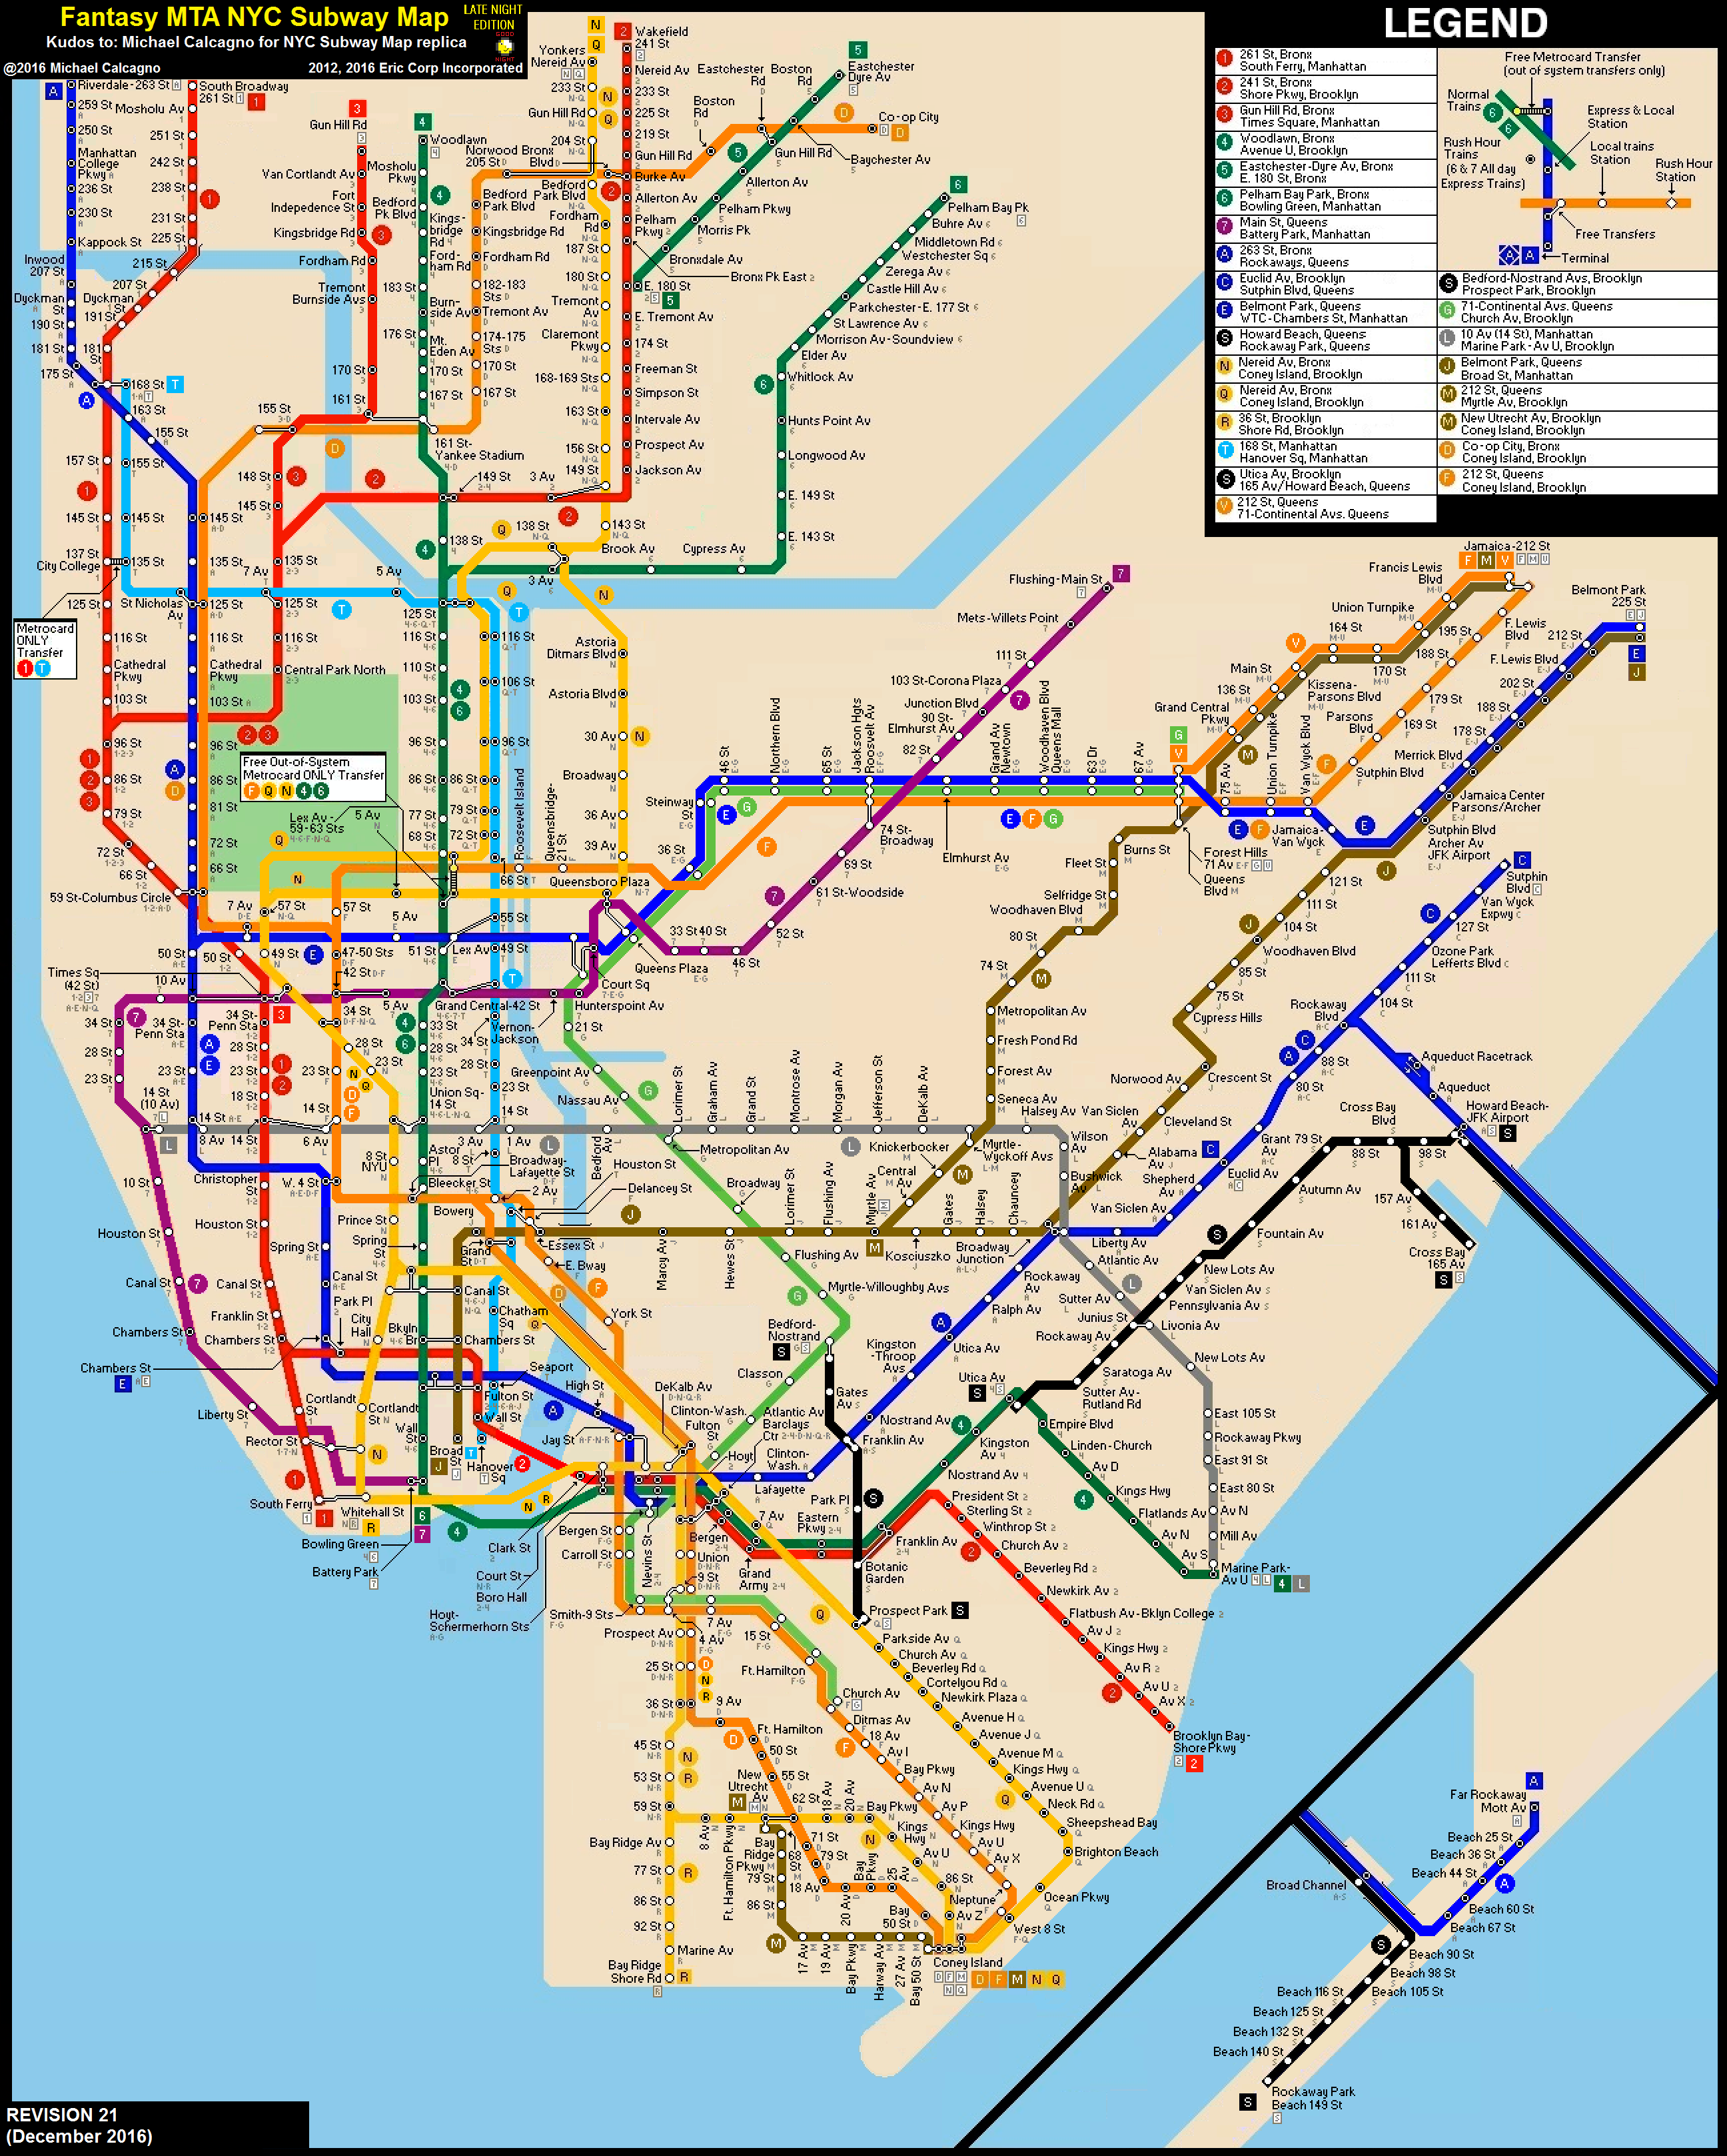 E Subway Map.Nyc Subway Fantasy Map Revision 21 Late Nights By Ecinc2xxx On